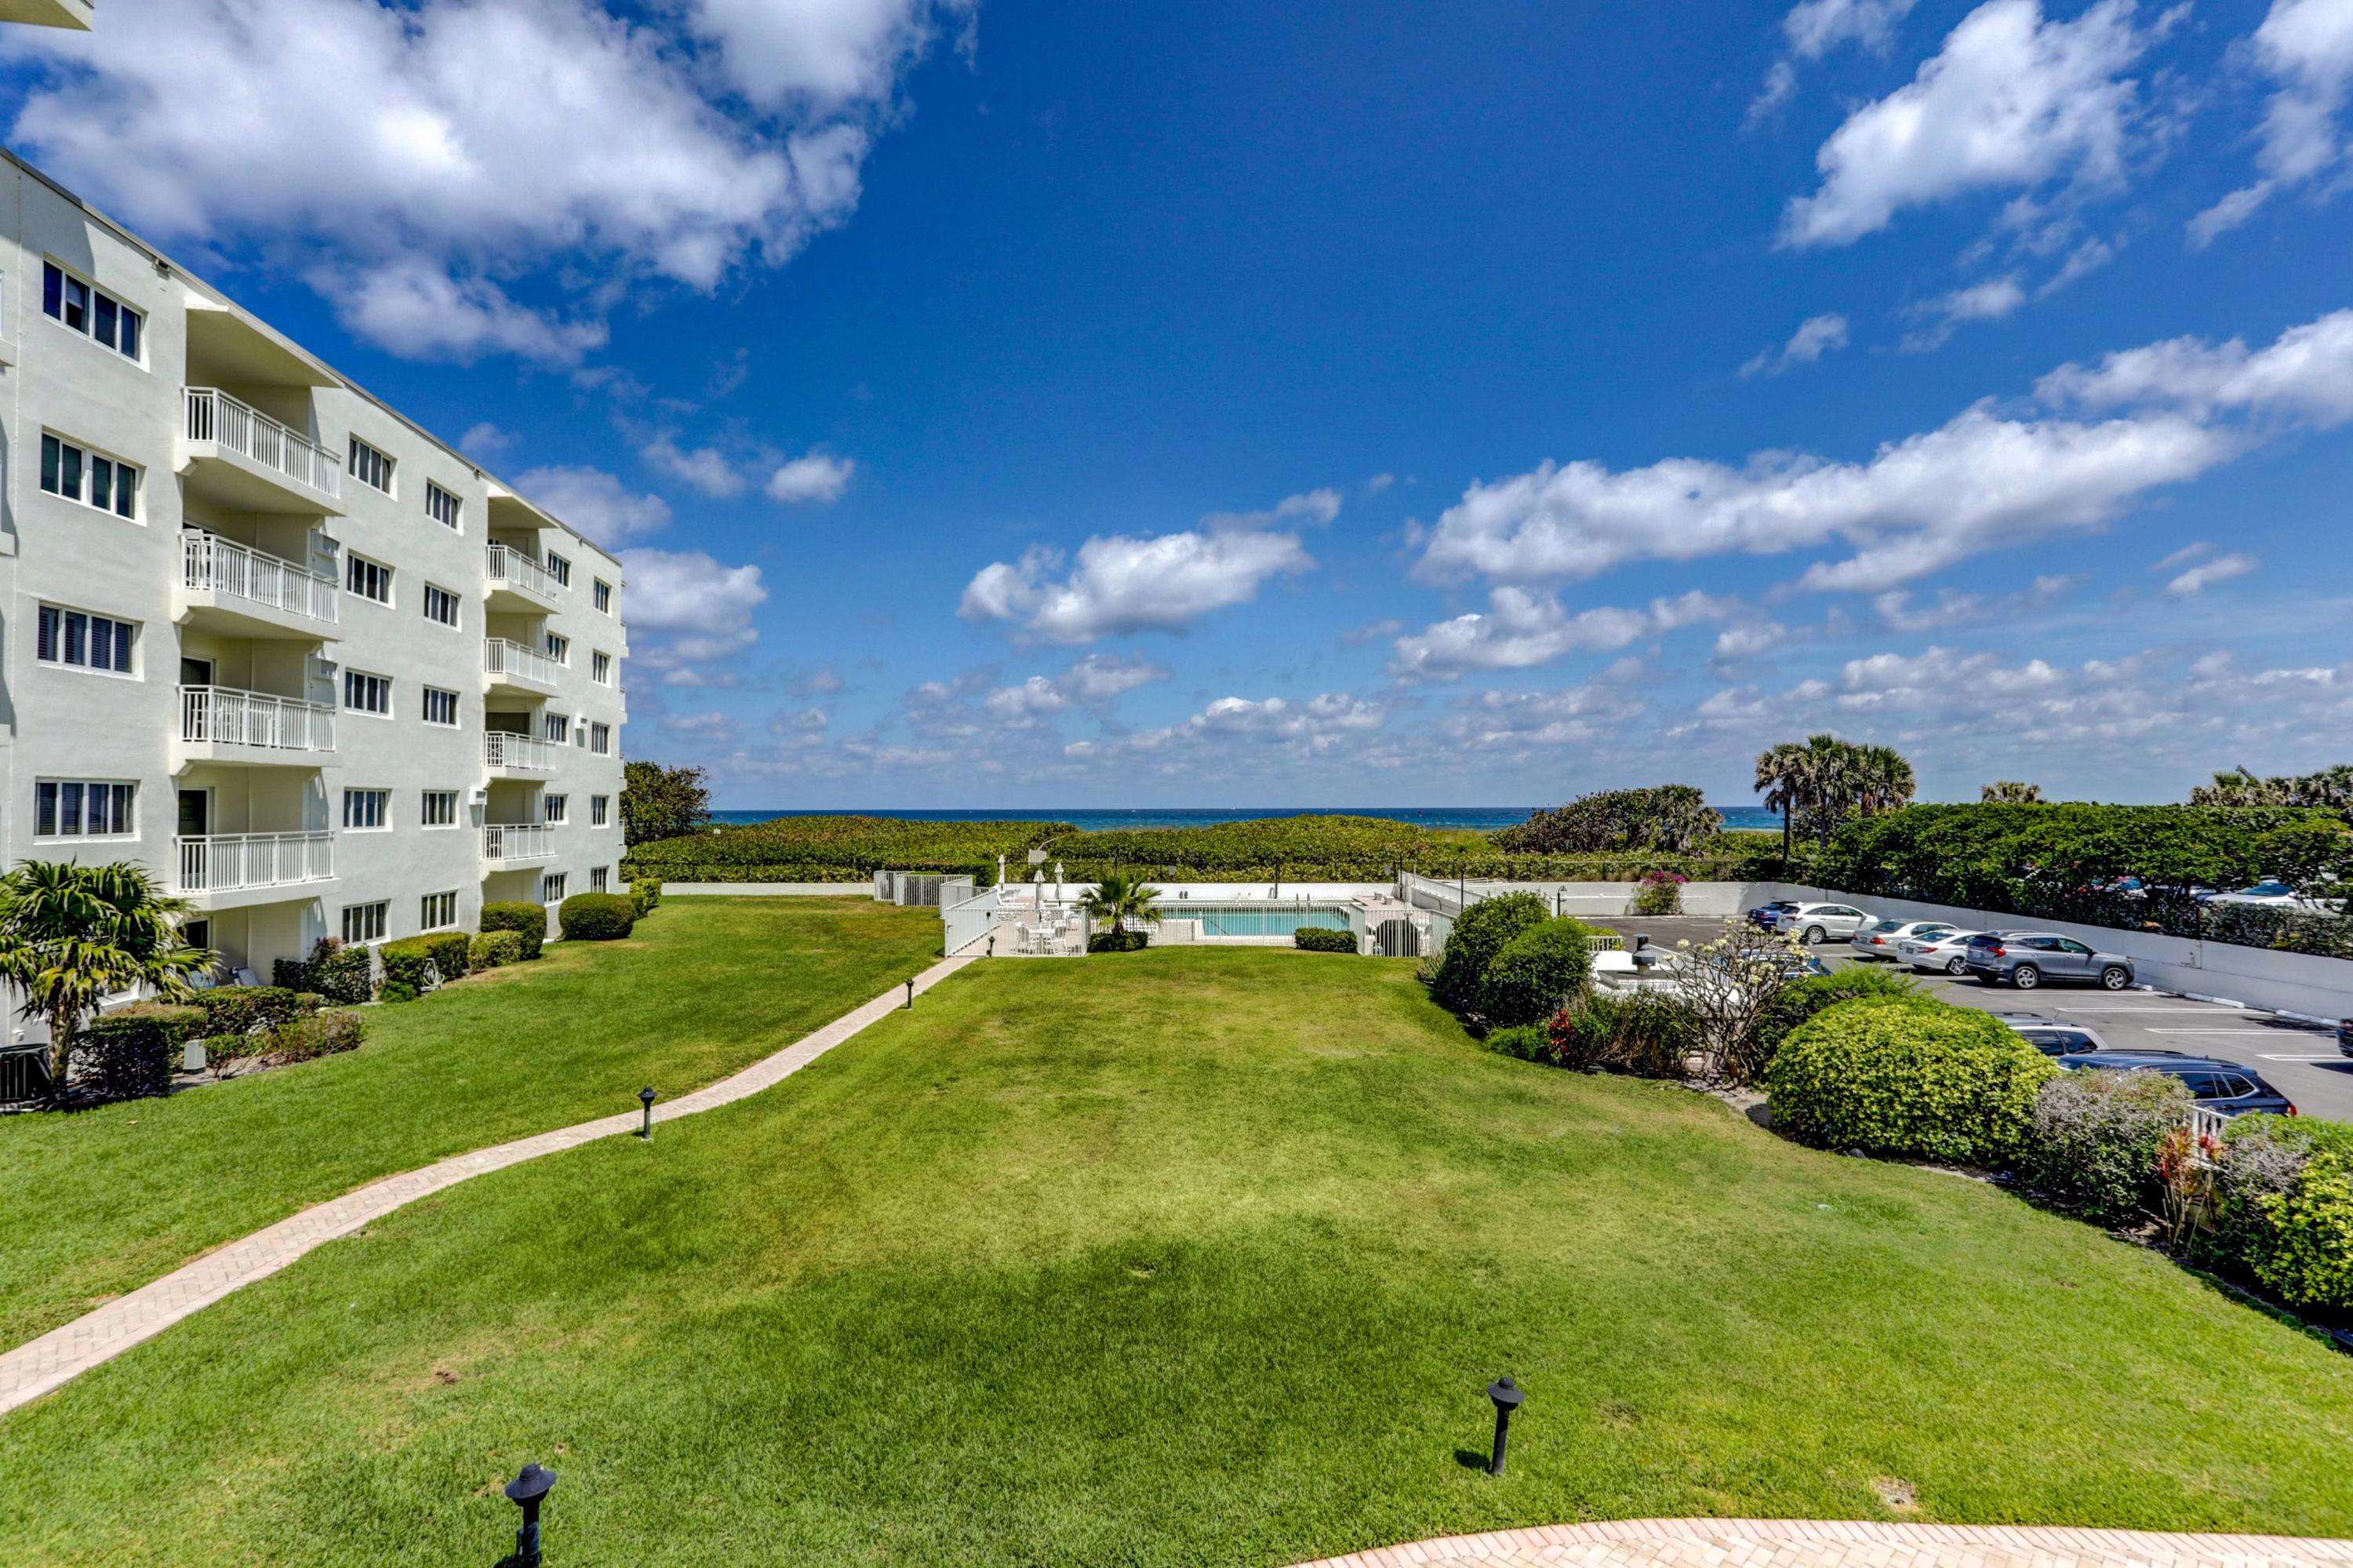 Very Rare opportunity!  These properties do not come along often.  This 1bdr 1 bath unit at Palm Beach Shores Apartments has direct Ocean views to the quiet and expansive beach of the Southern tip of the Island.  Private beach access and steps to the world class Palm Beach Inlet.  The mid-century modern design has recently had a complete updating including concrete work and painting, balconies tile and railings replaced, remodeled lobby, and social area, pool work and bbq grills...and the list goes on.  This unit has New Impact windows, New AC, new Water Heater.